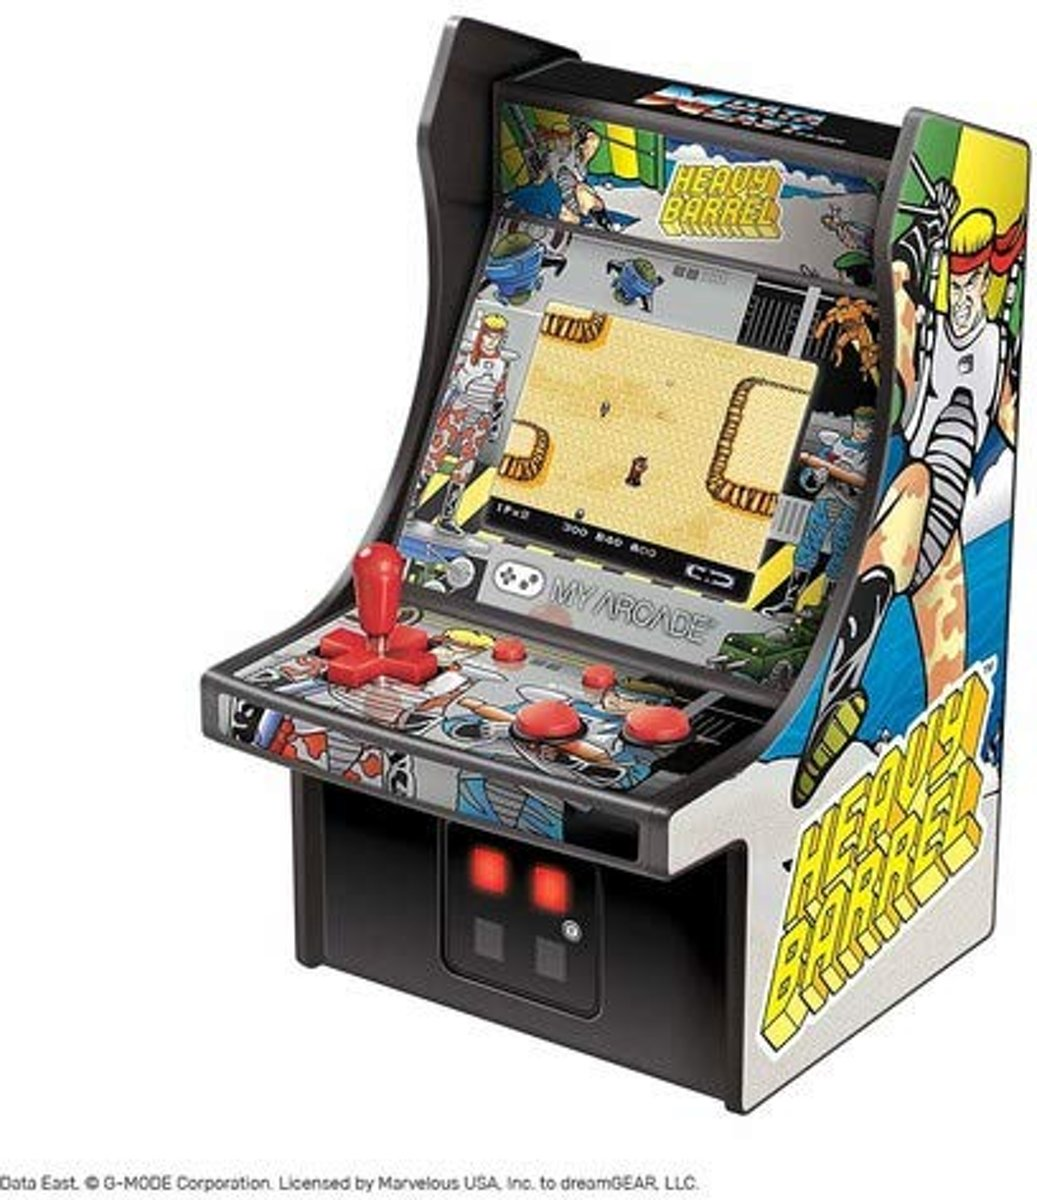 Retro Mini Arcade Machine Heavy barrel